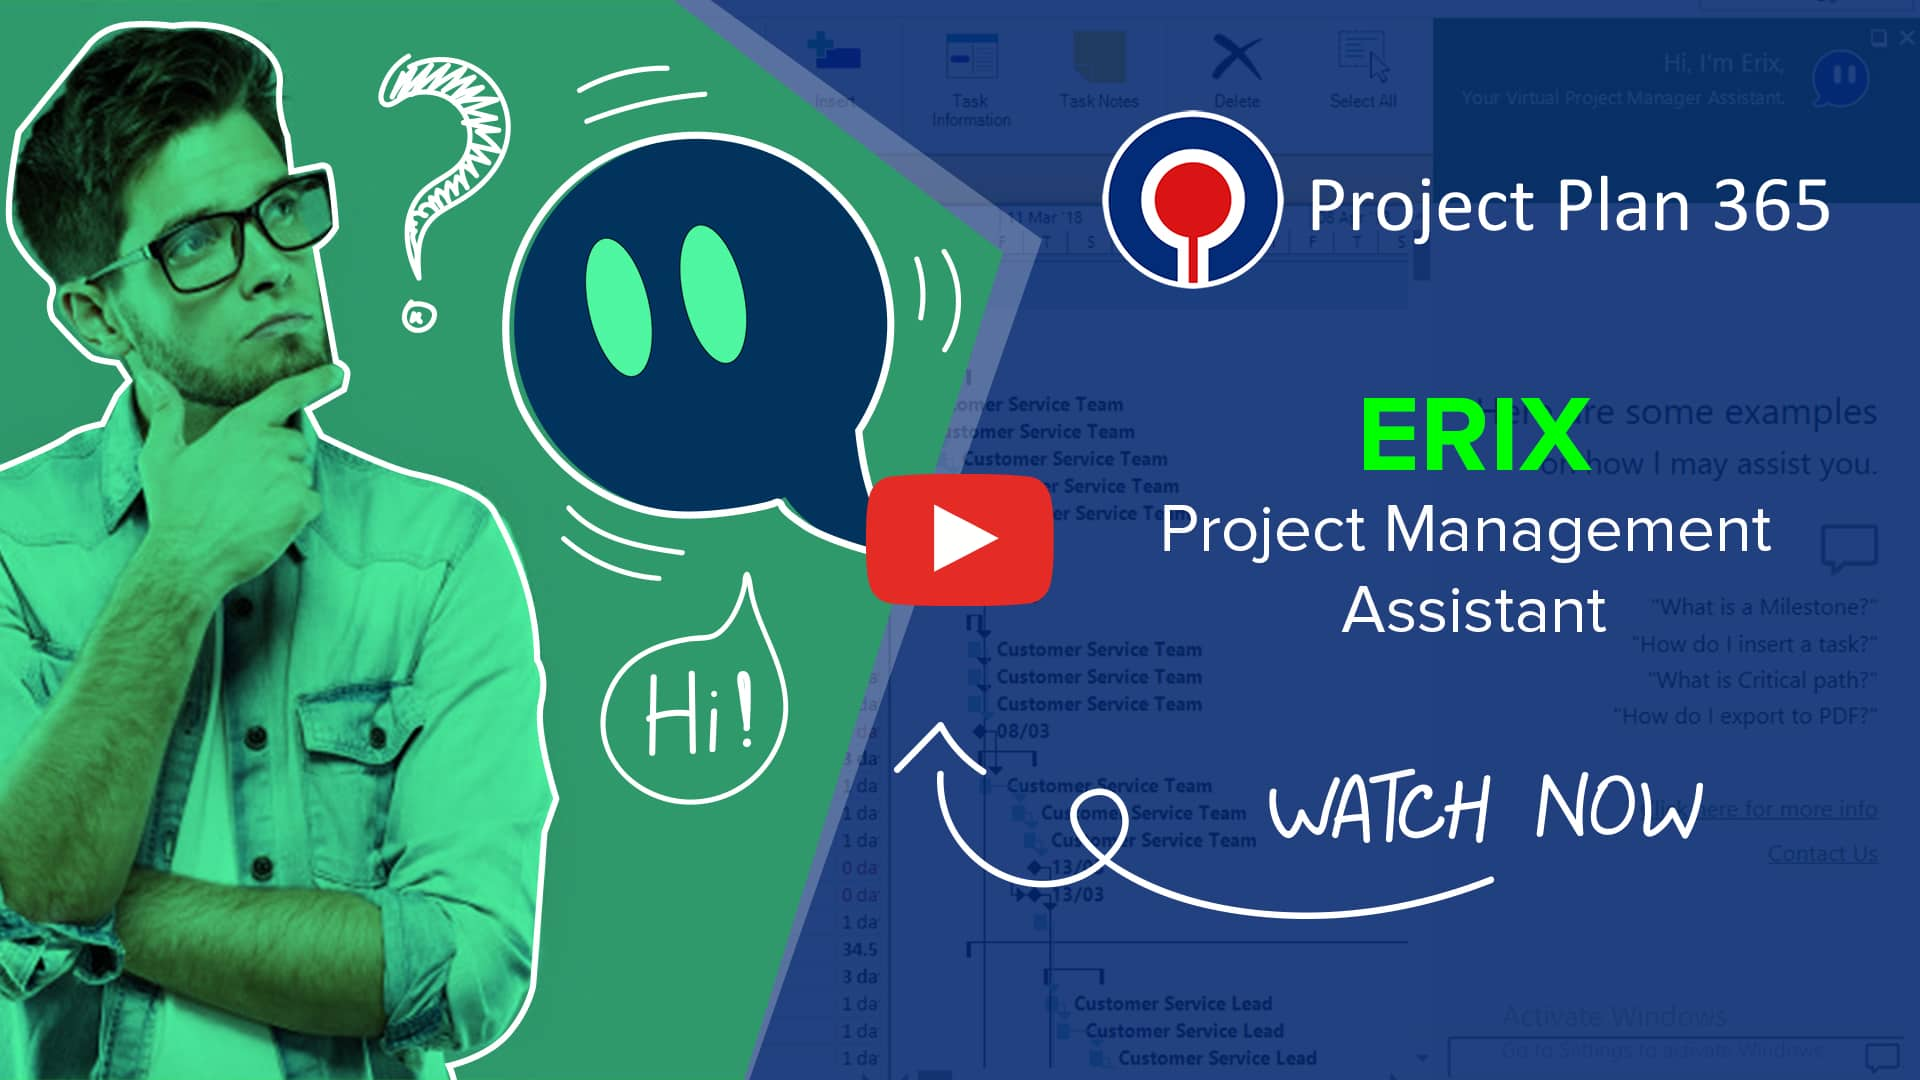 Erix Project Management Assistant